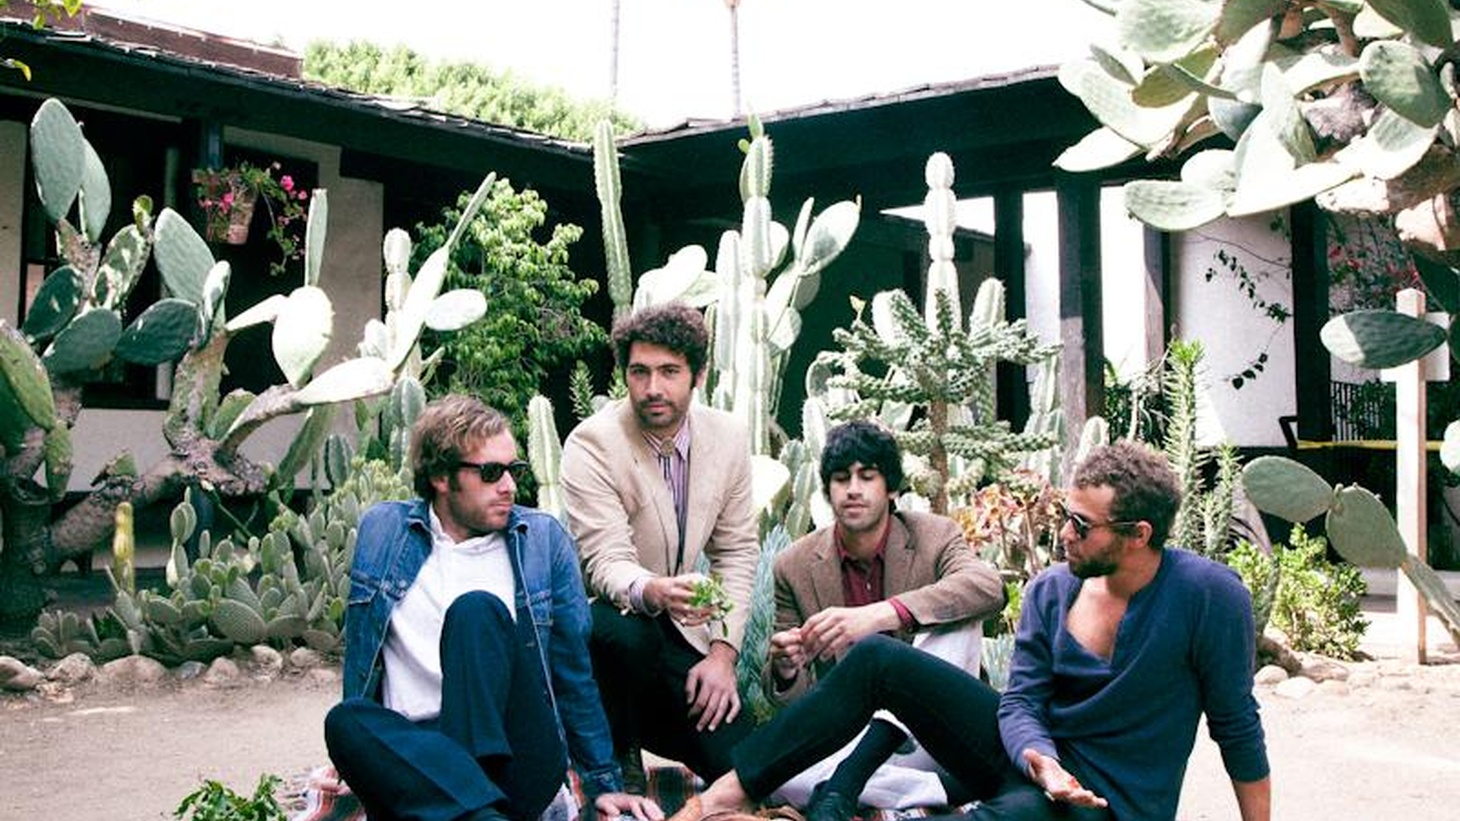 Members of the Allah-Las met while working at Amoeba Music in Hollywood, which could explain all the influences you hear in their music including surf rock, 60's vibes...